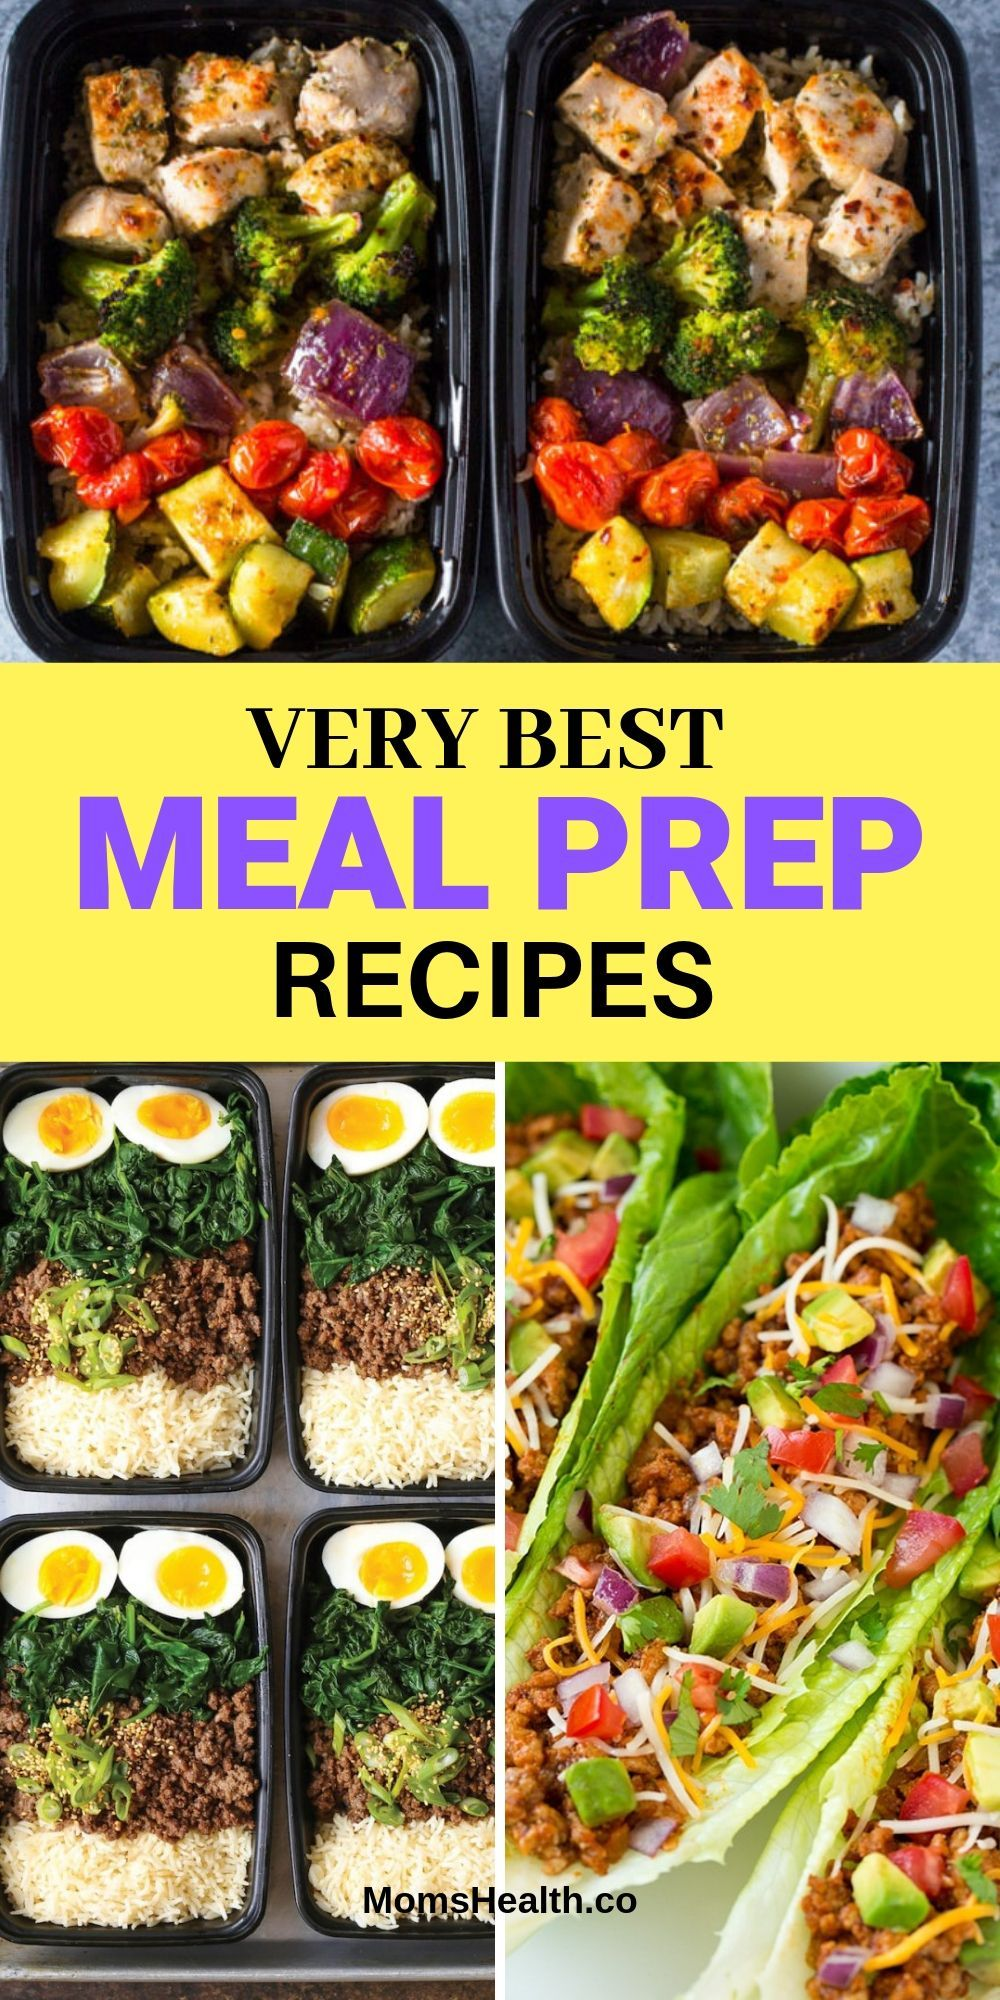 Photo of 15 Best Healthy Meal Prep Recipes for Beginners on a Budget